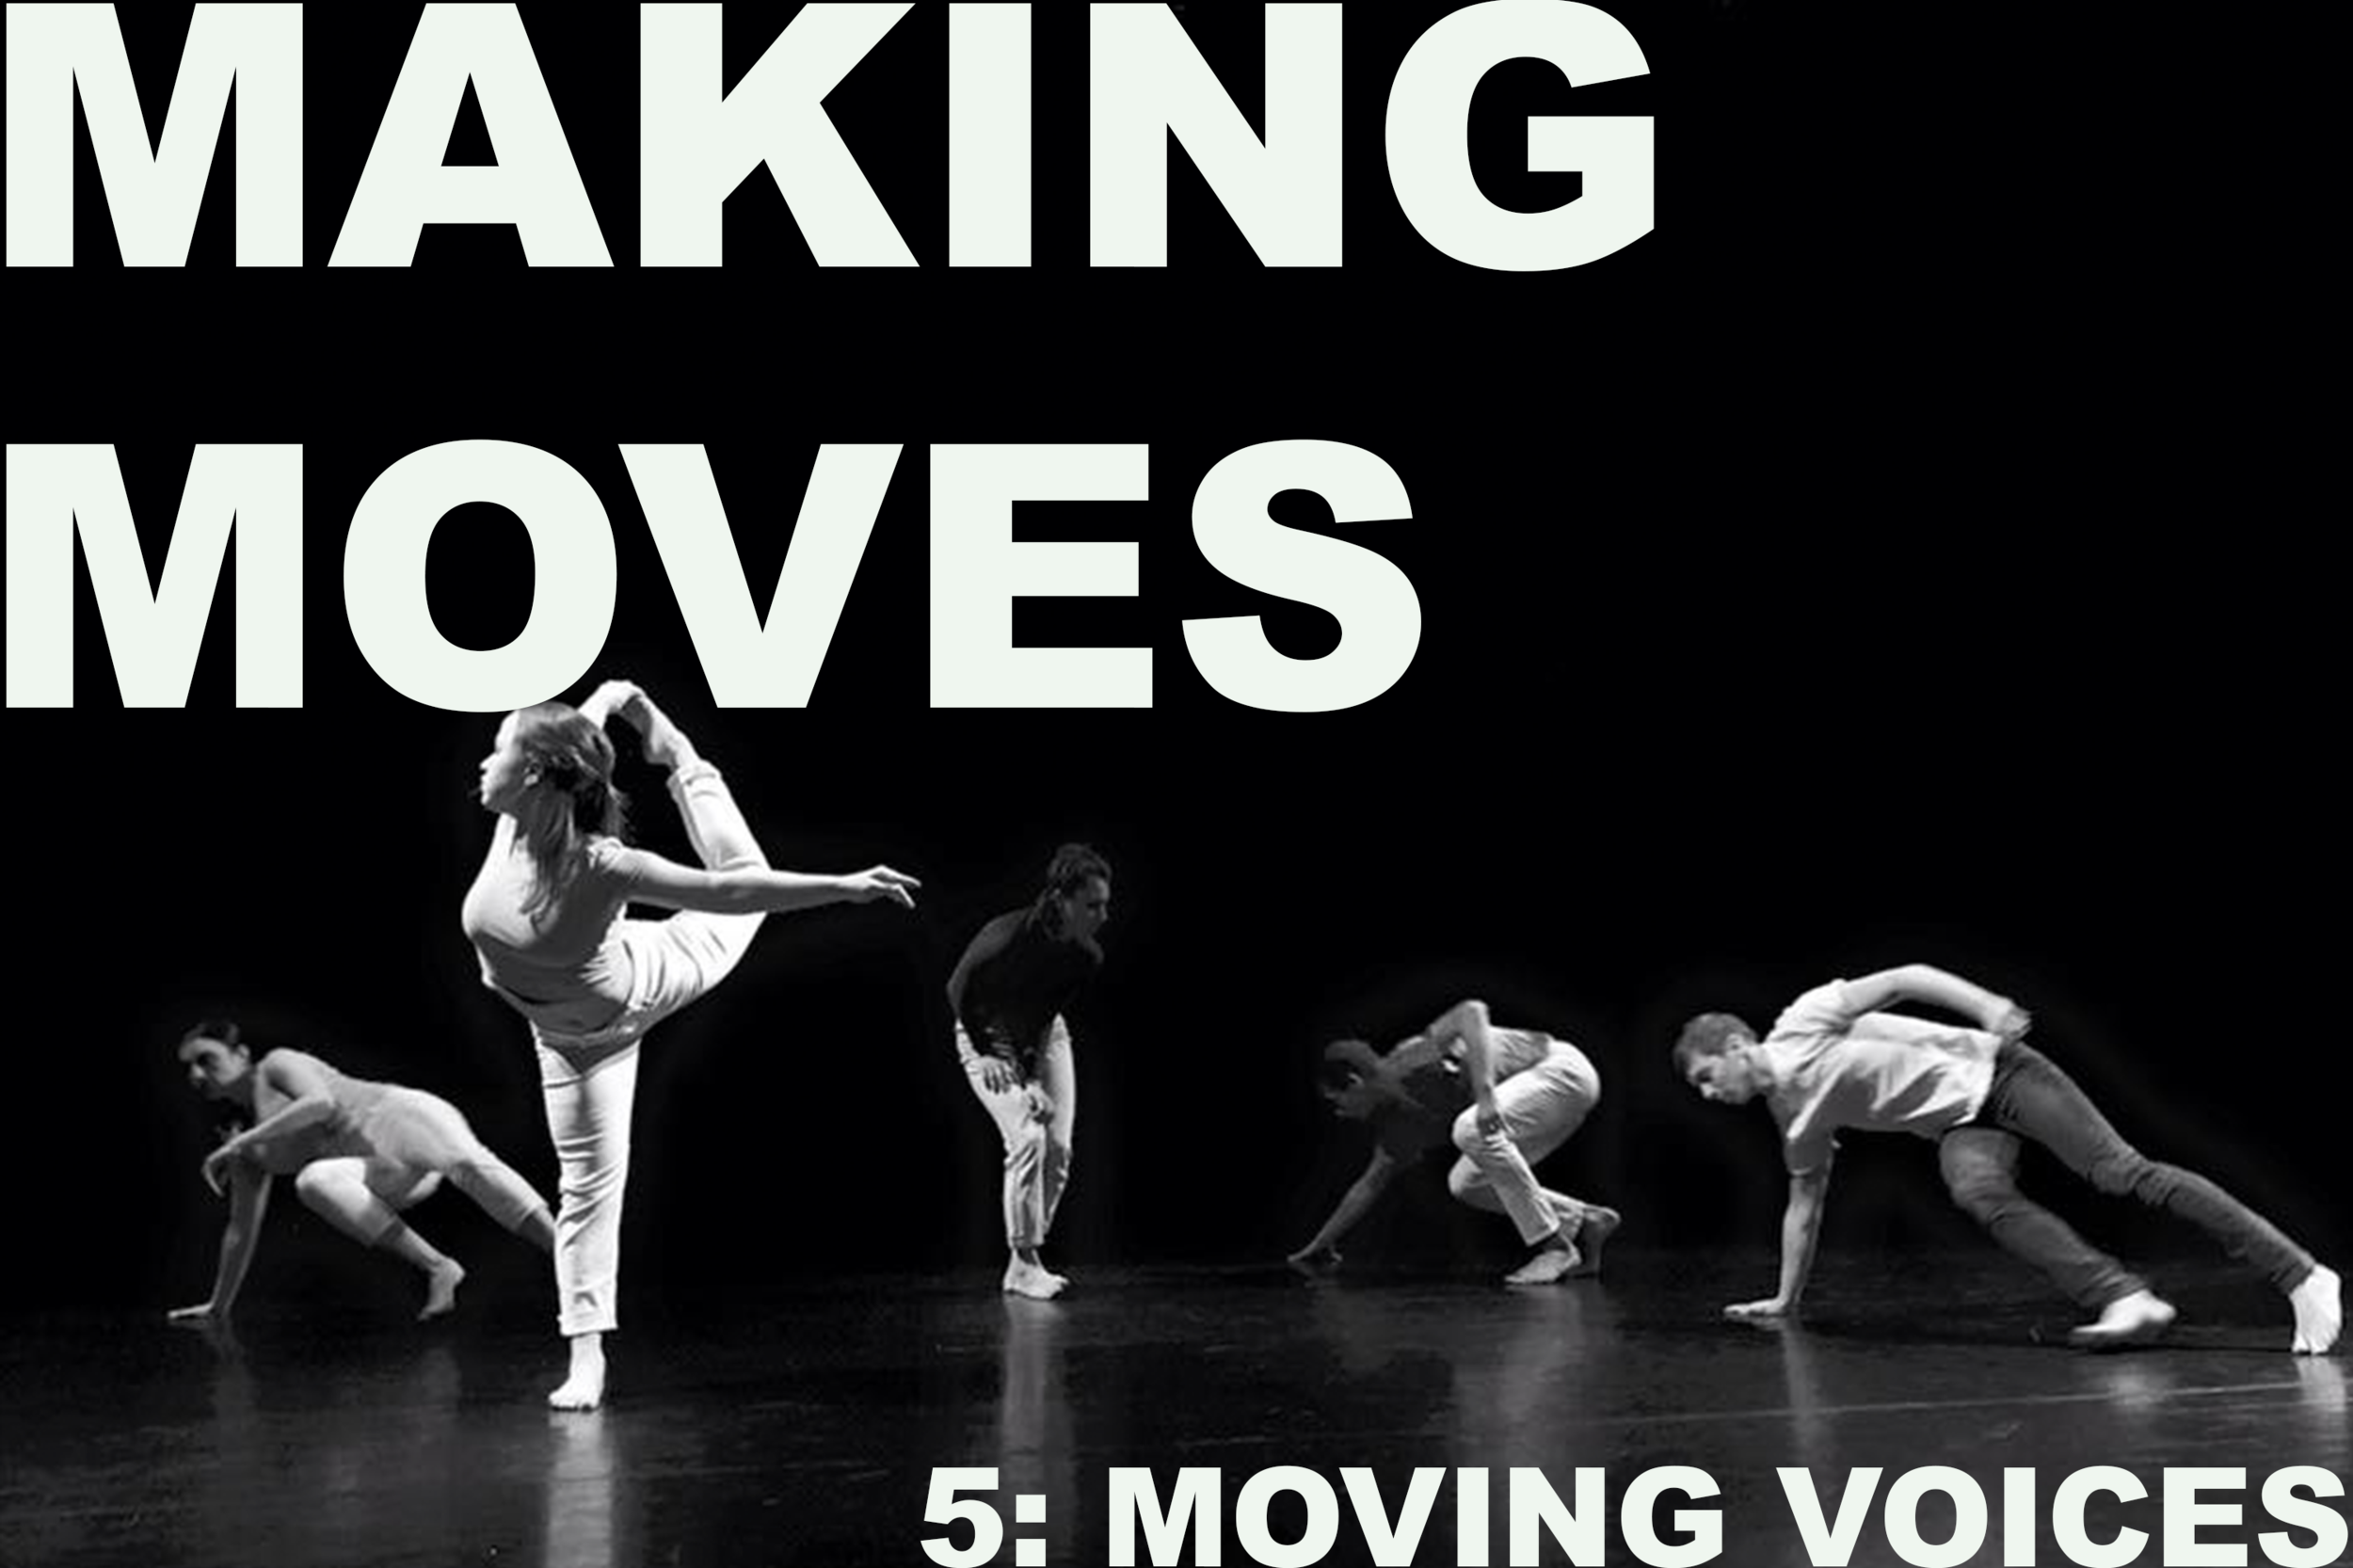 Making Moves is BACK! For our fifth installment, Making Moves will present dance works by Brianna Wheeler, Lauri Hoedel, and Hunter Jones. After the performance, a screening from The Merce Cunningham event Night of 100 Solos: A Centennial Event. The performance was filmed live celebrating what would have been the 100th birthday of legendary choreographer Merce Cunningham.   Doors open at 6:30 PM and performances begin at 7:00 PM.   The event is FREE and open to the public. All ages are welcome.  A monthly gathering, Making Moves aims to build community through a shared passion for dance and movement. Throughout 2019, Making Moves will host improvisation jams and provide performance opportunities for local and regional dance makers. The series is produced by Kyle Mullins and made possible by Charlotte Street Foundation.